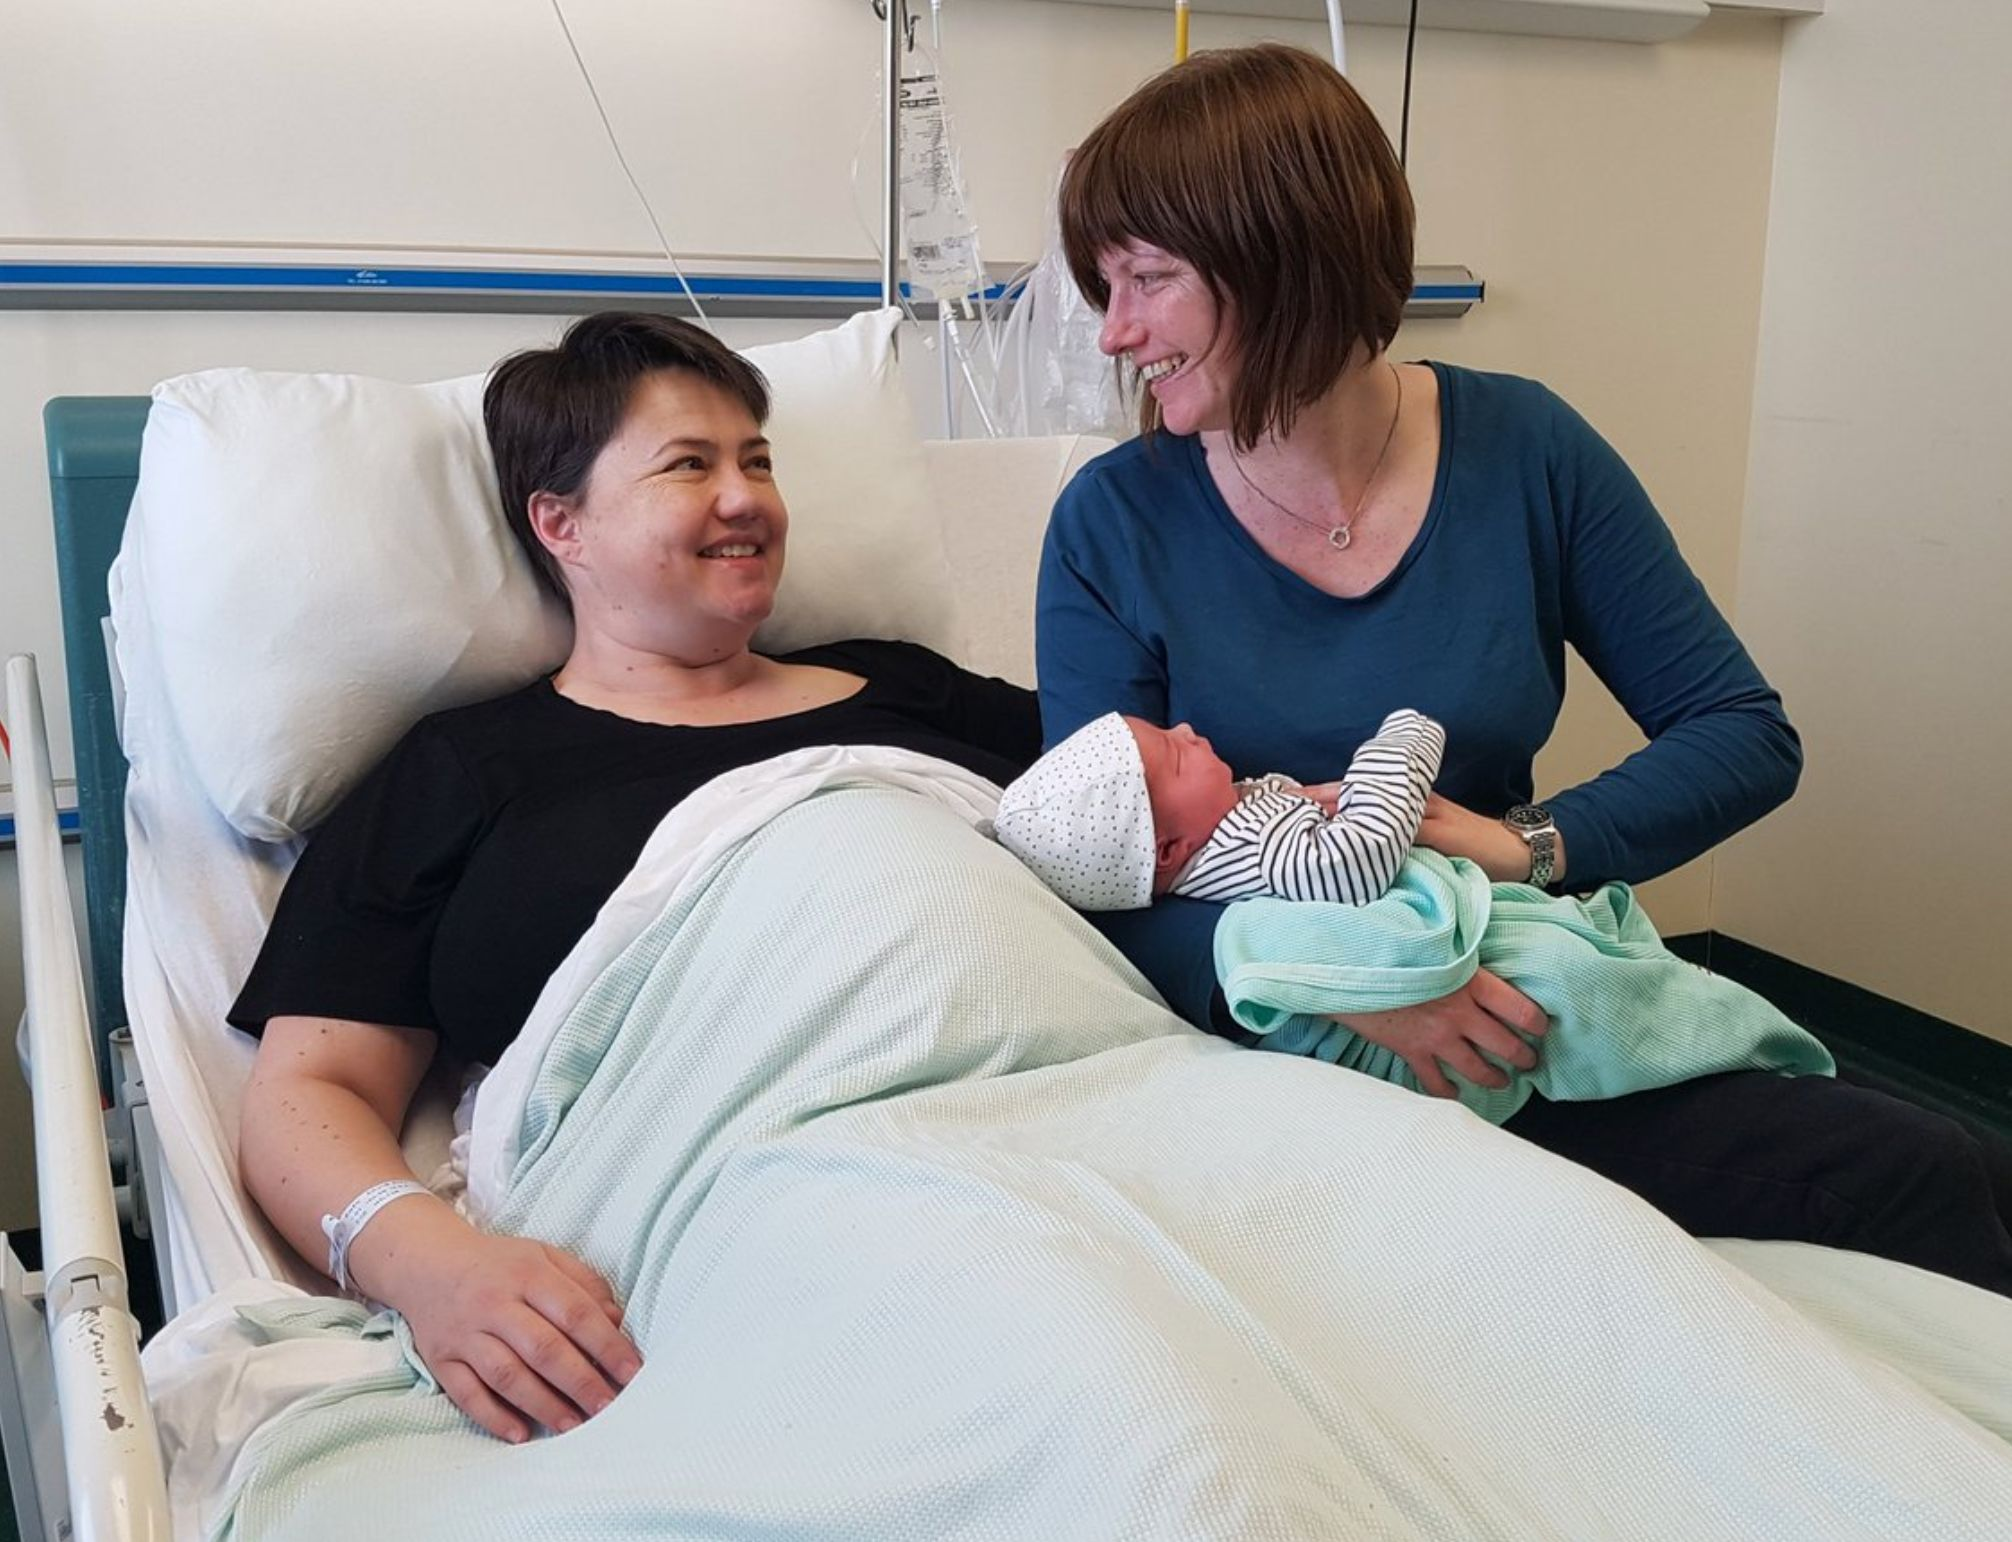 Scottish Tory Leader Ruth Davidson Gives Birth To Baby